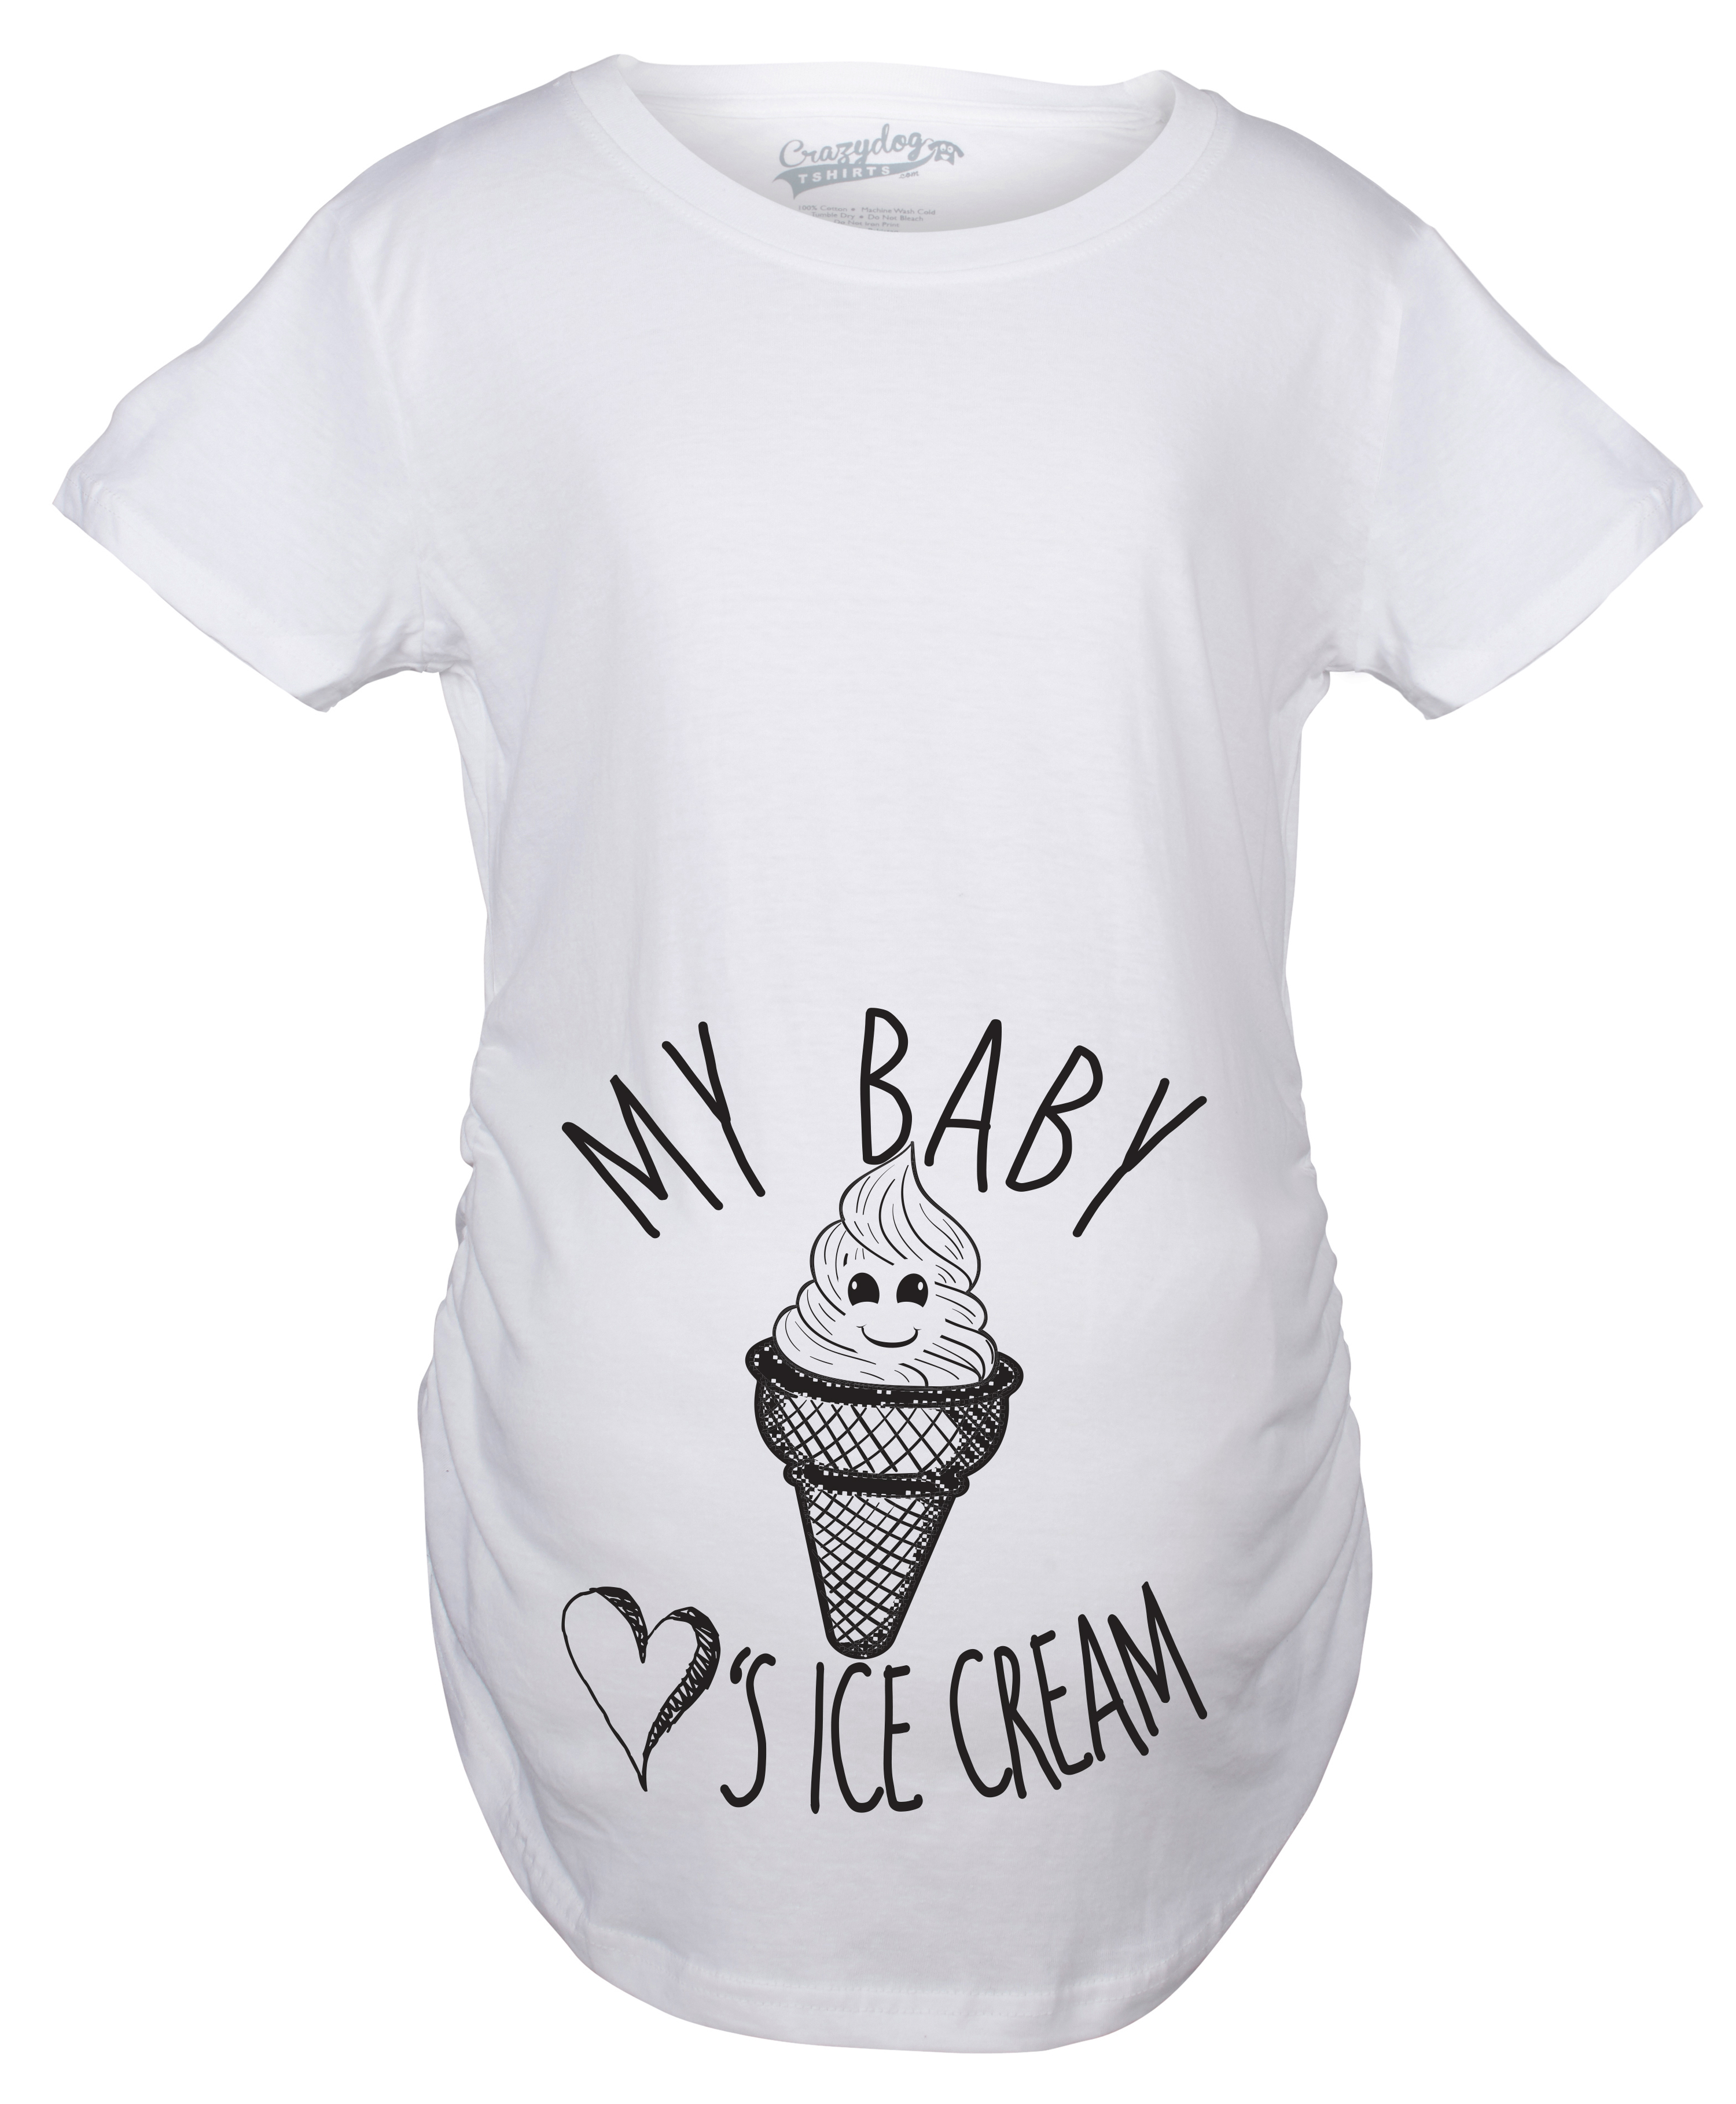 Crazy Dog TShirts - Maternity My Baby Loves Ice Cream Funny Announce Pregnancy Baby Bump T shirt